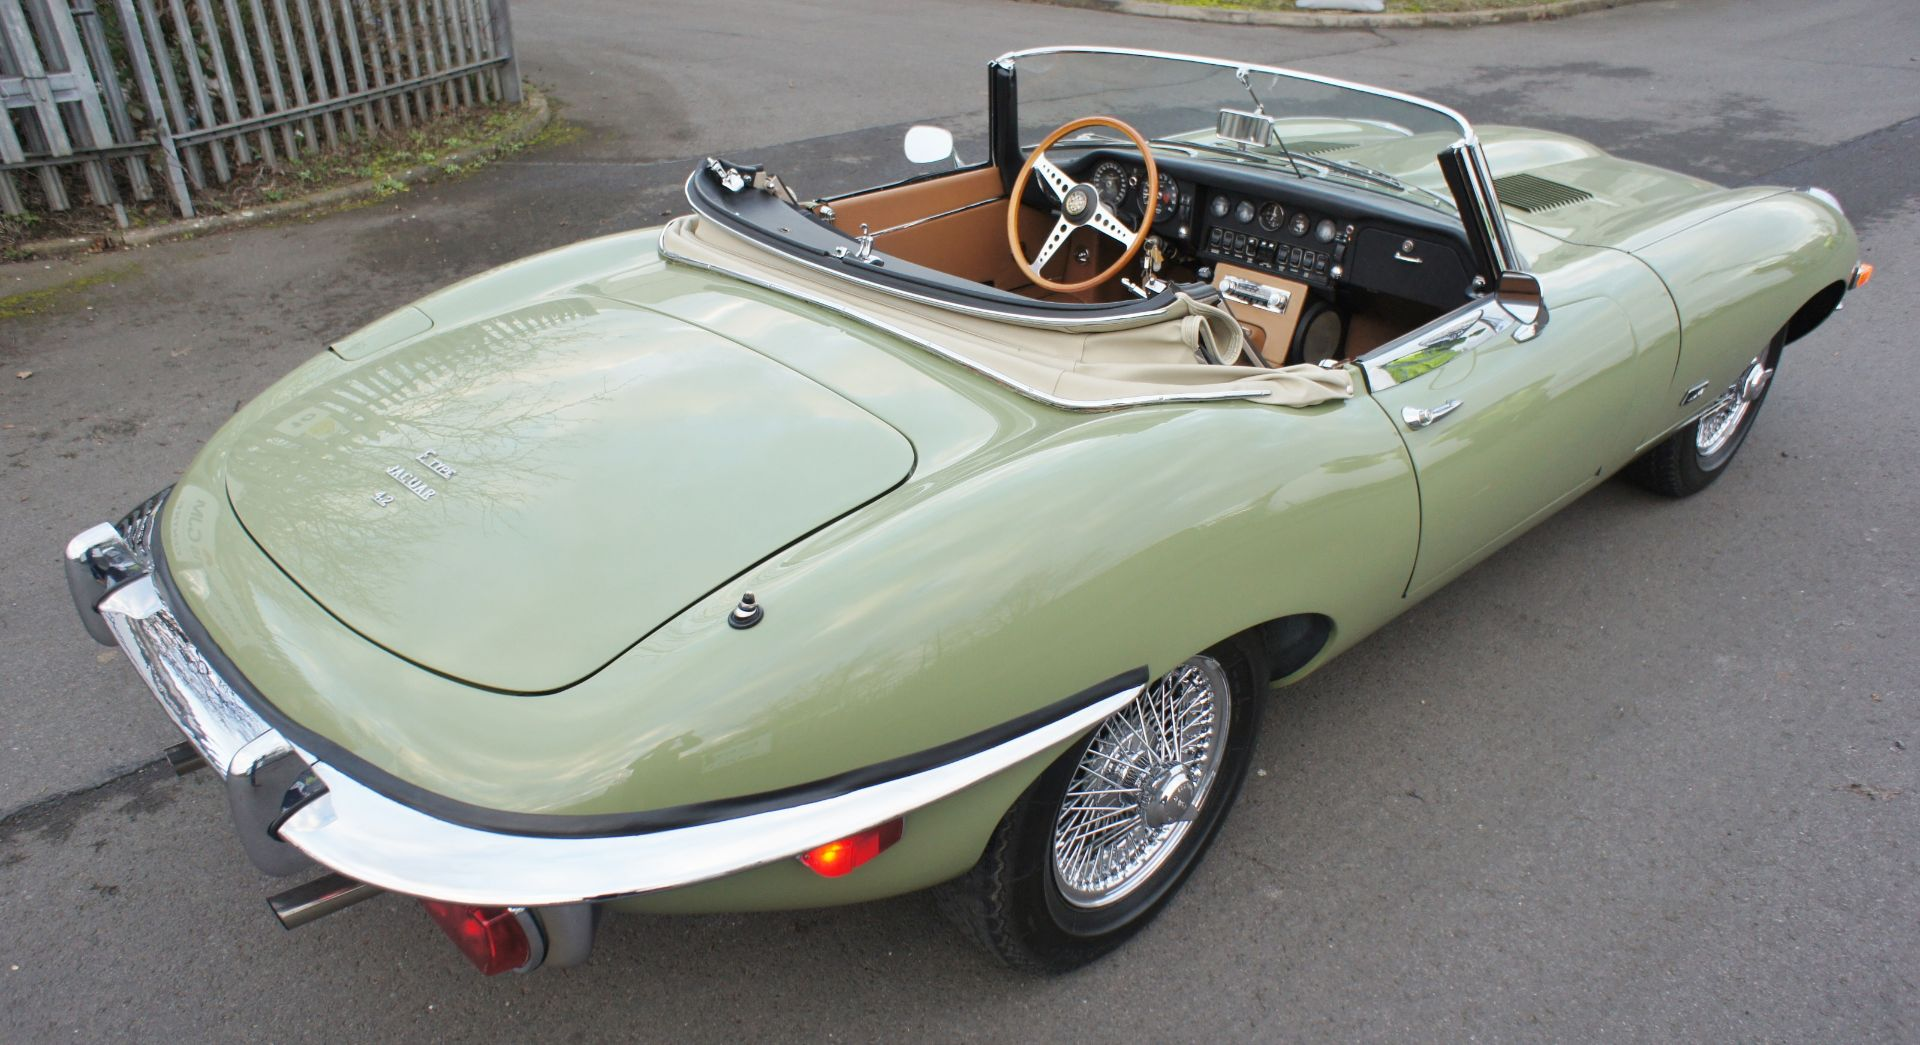 Lot 1 - 1970 JAGUAR E TYPE SERIES 2 OTS BARE METAL RESTORATION